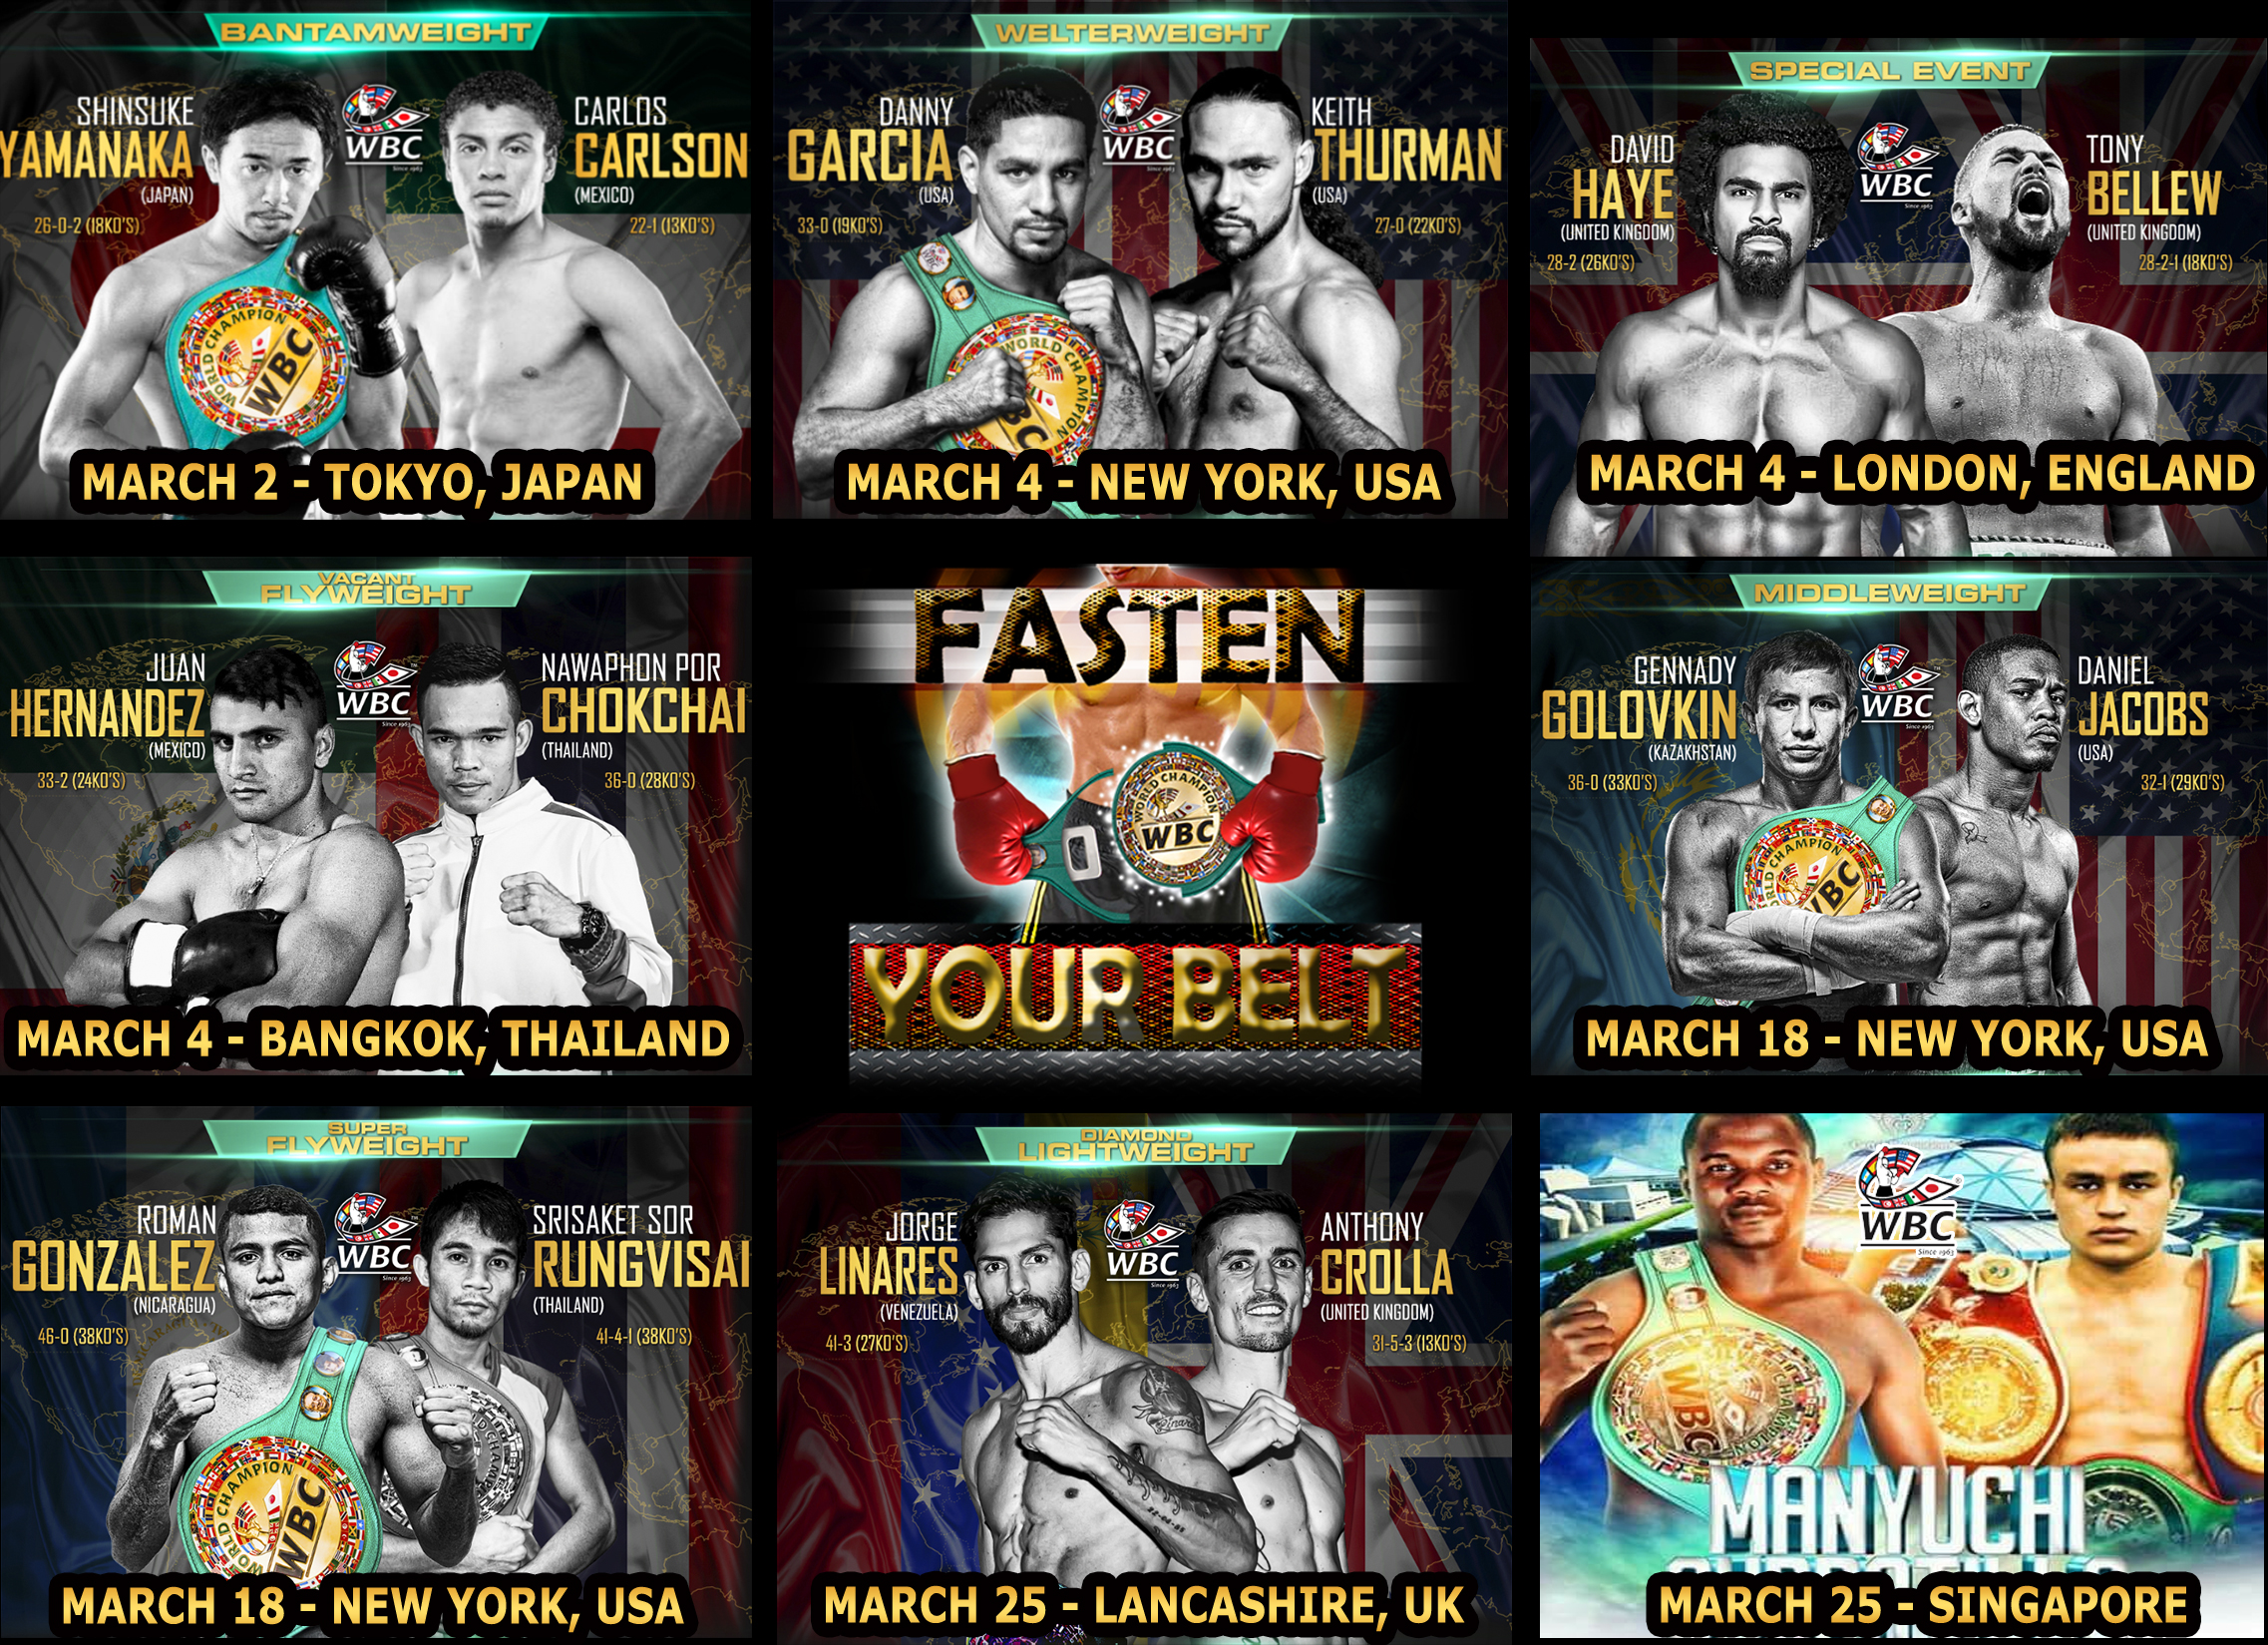 fasten-your-belt-marzo-2016